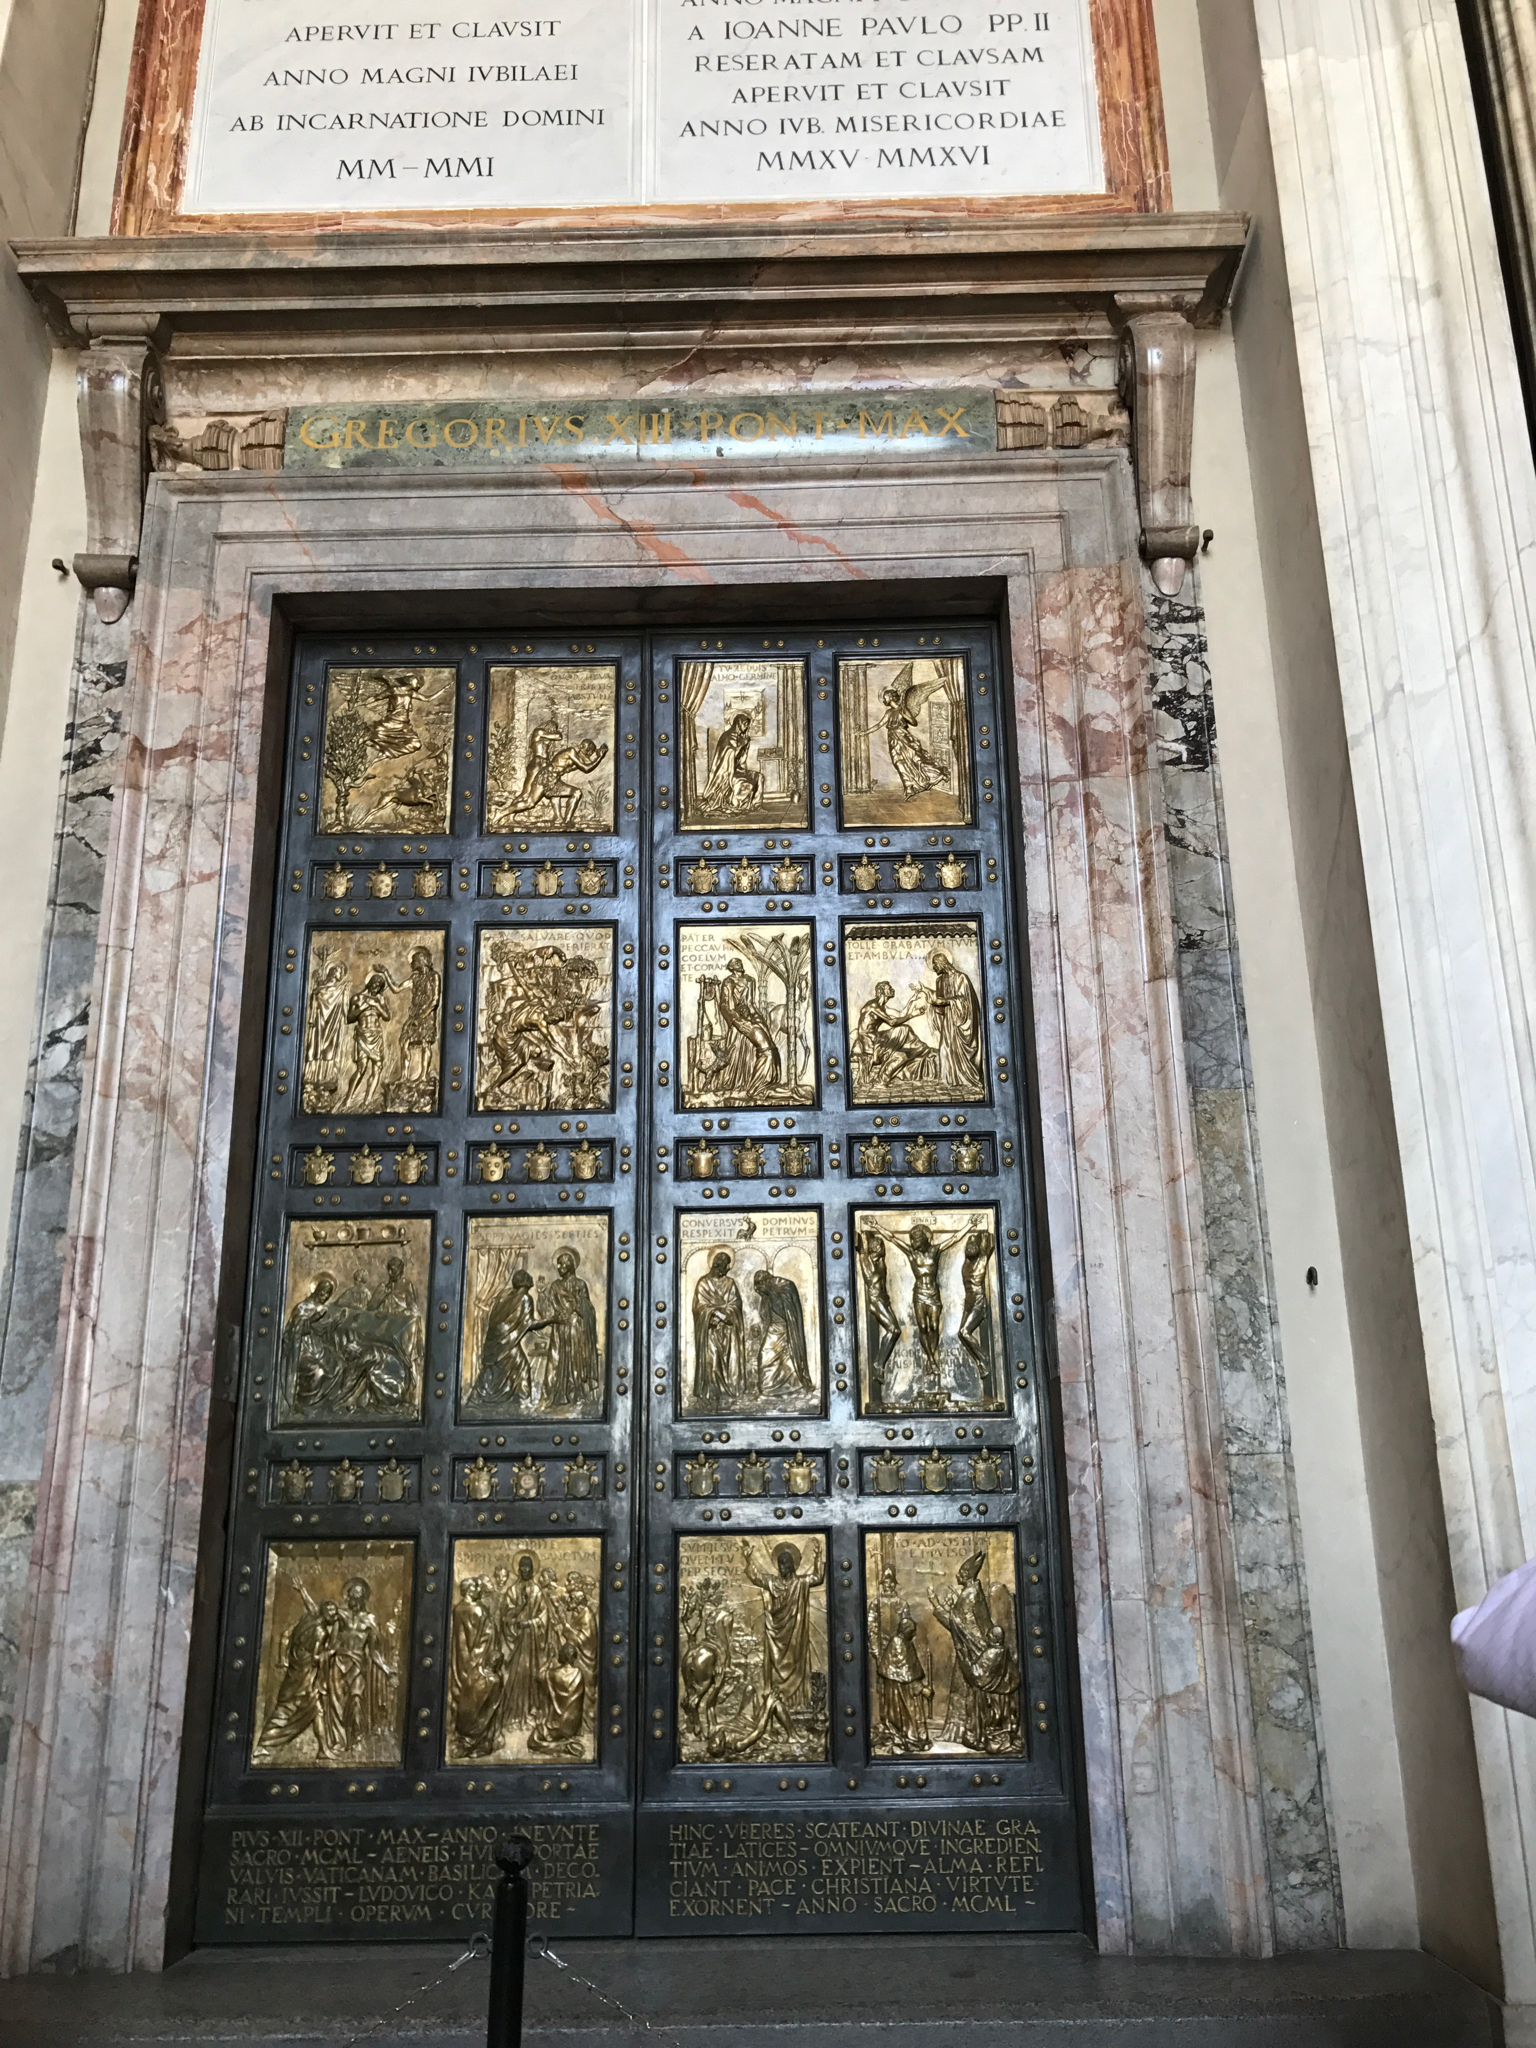 the gates in the narthex of the basilica act as the holy door and are only open during jubilee years of the catholic church.